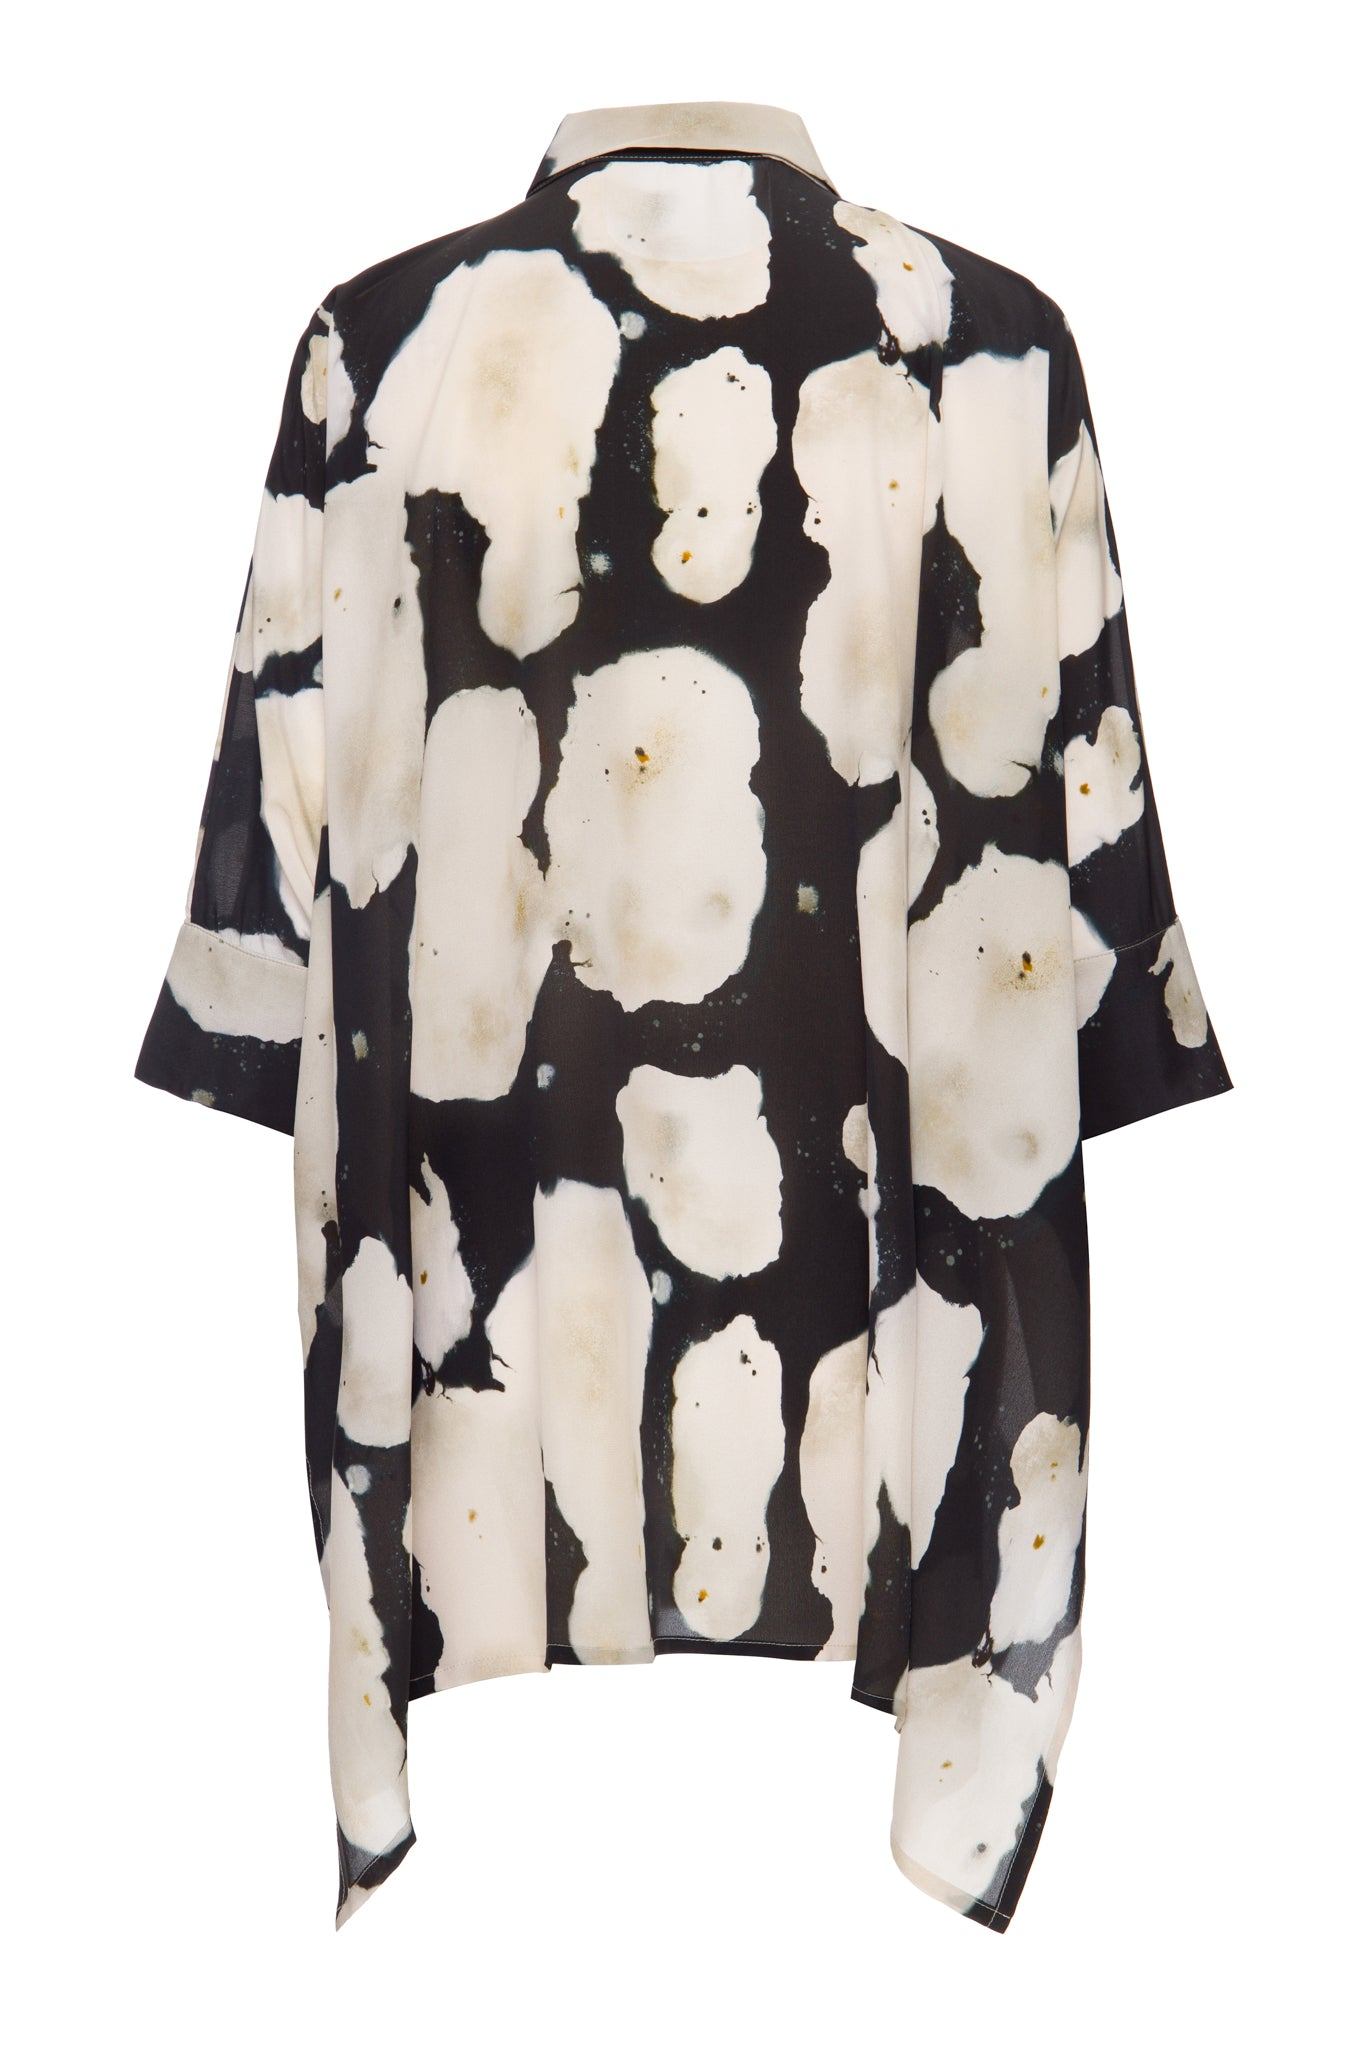 fungus black and white squared shirt